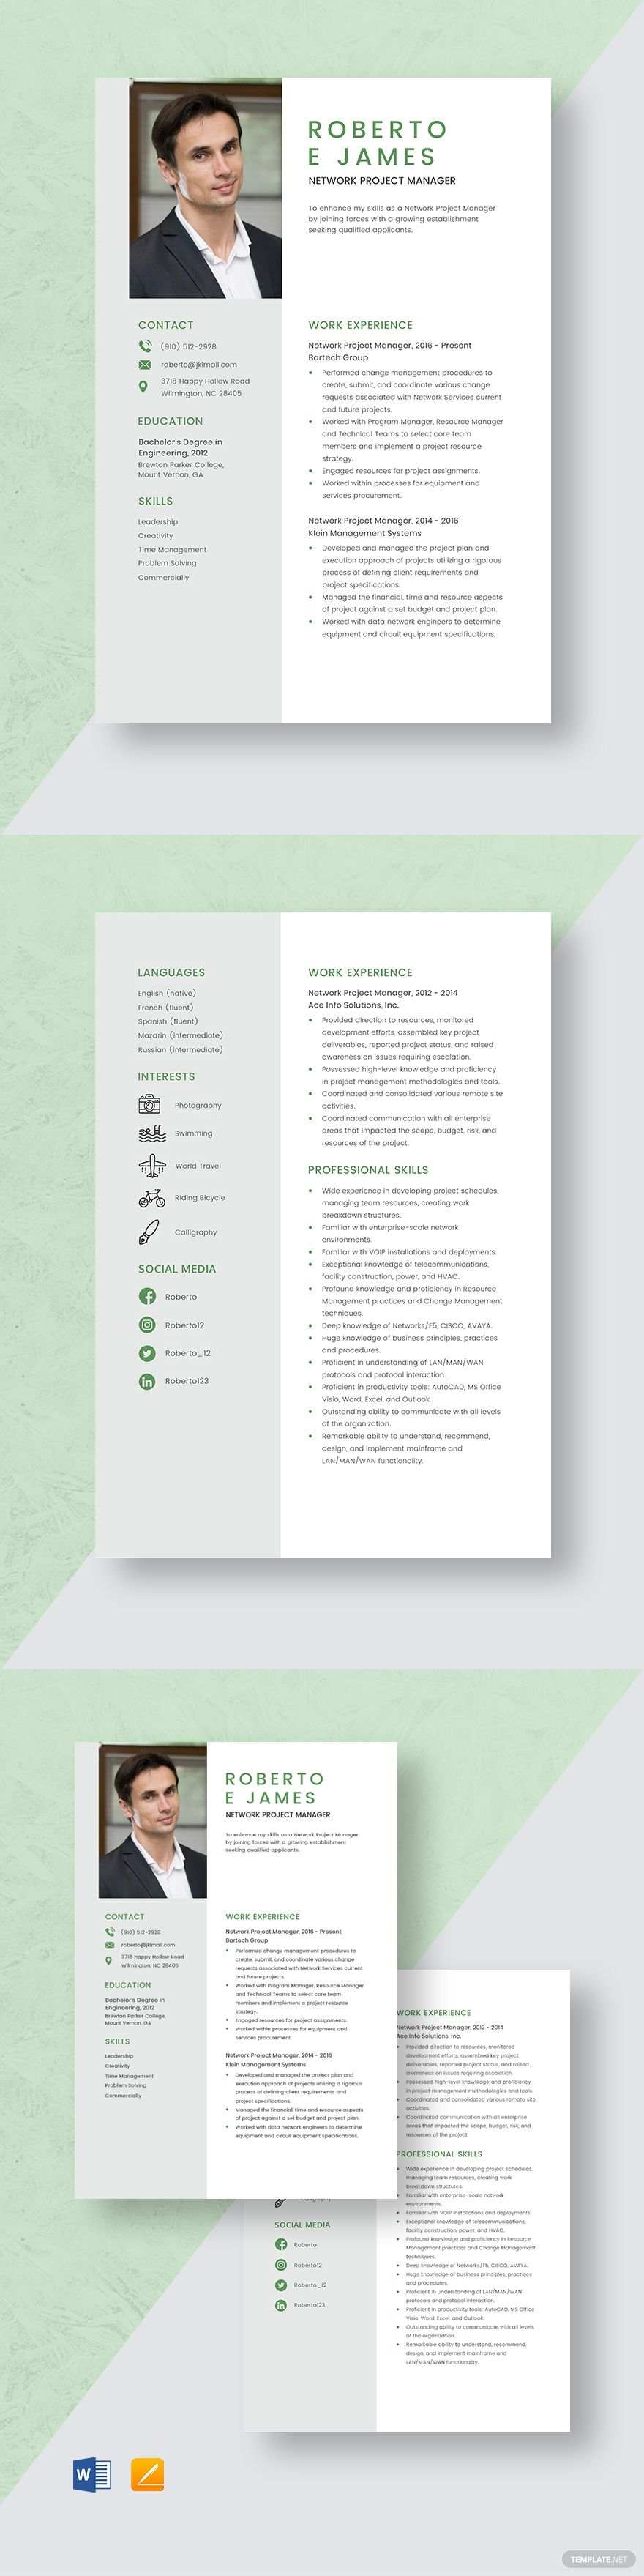 Network Project Manager Resume Template #AD, , #Ad, #Project, #Network, #Manager, #Template, #Resume